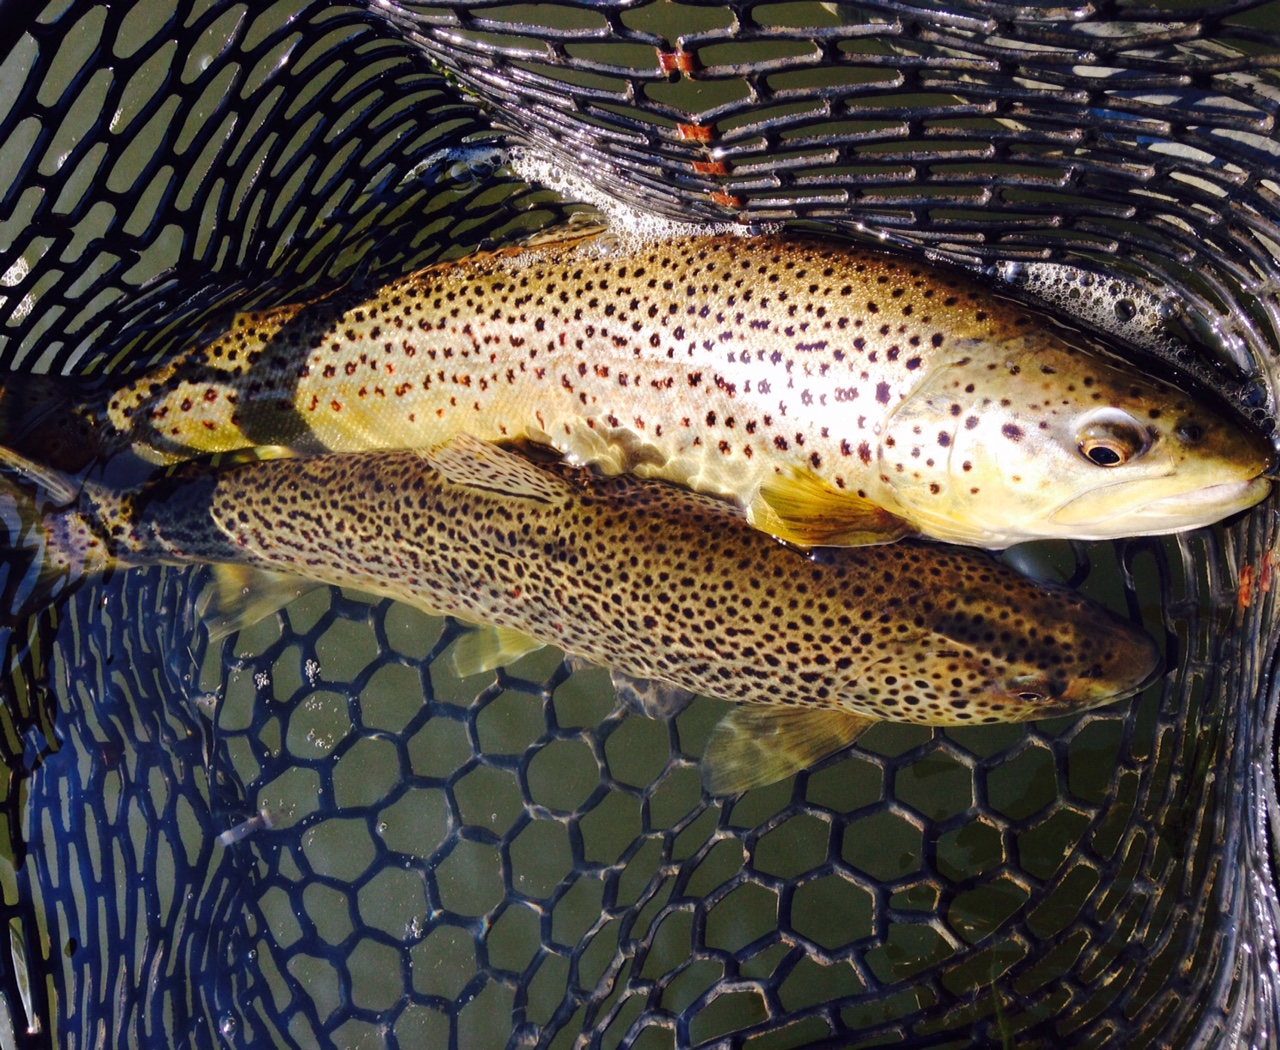 09/19/15 Dan B. and Guide Evan P. double up on Brown trout!